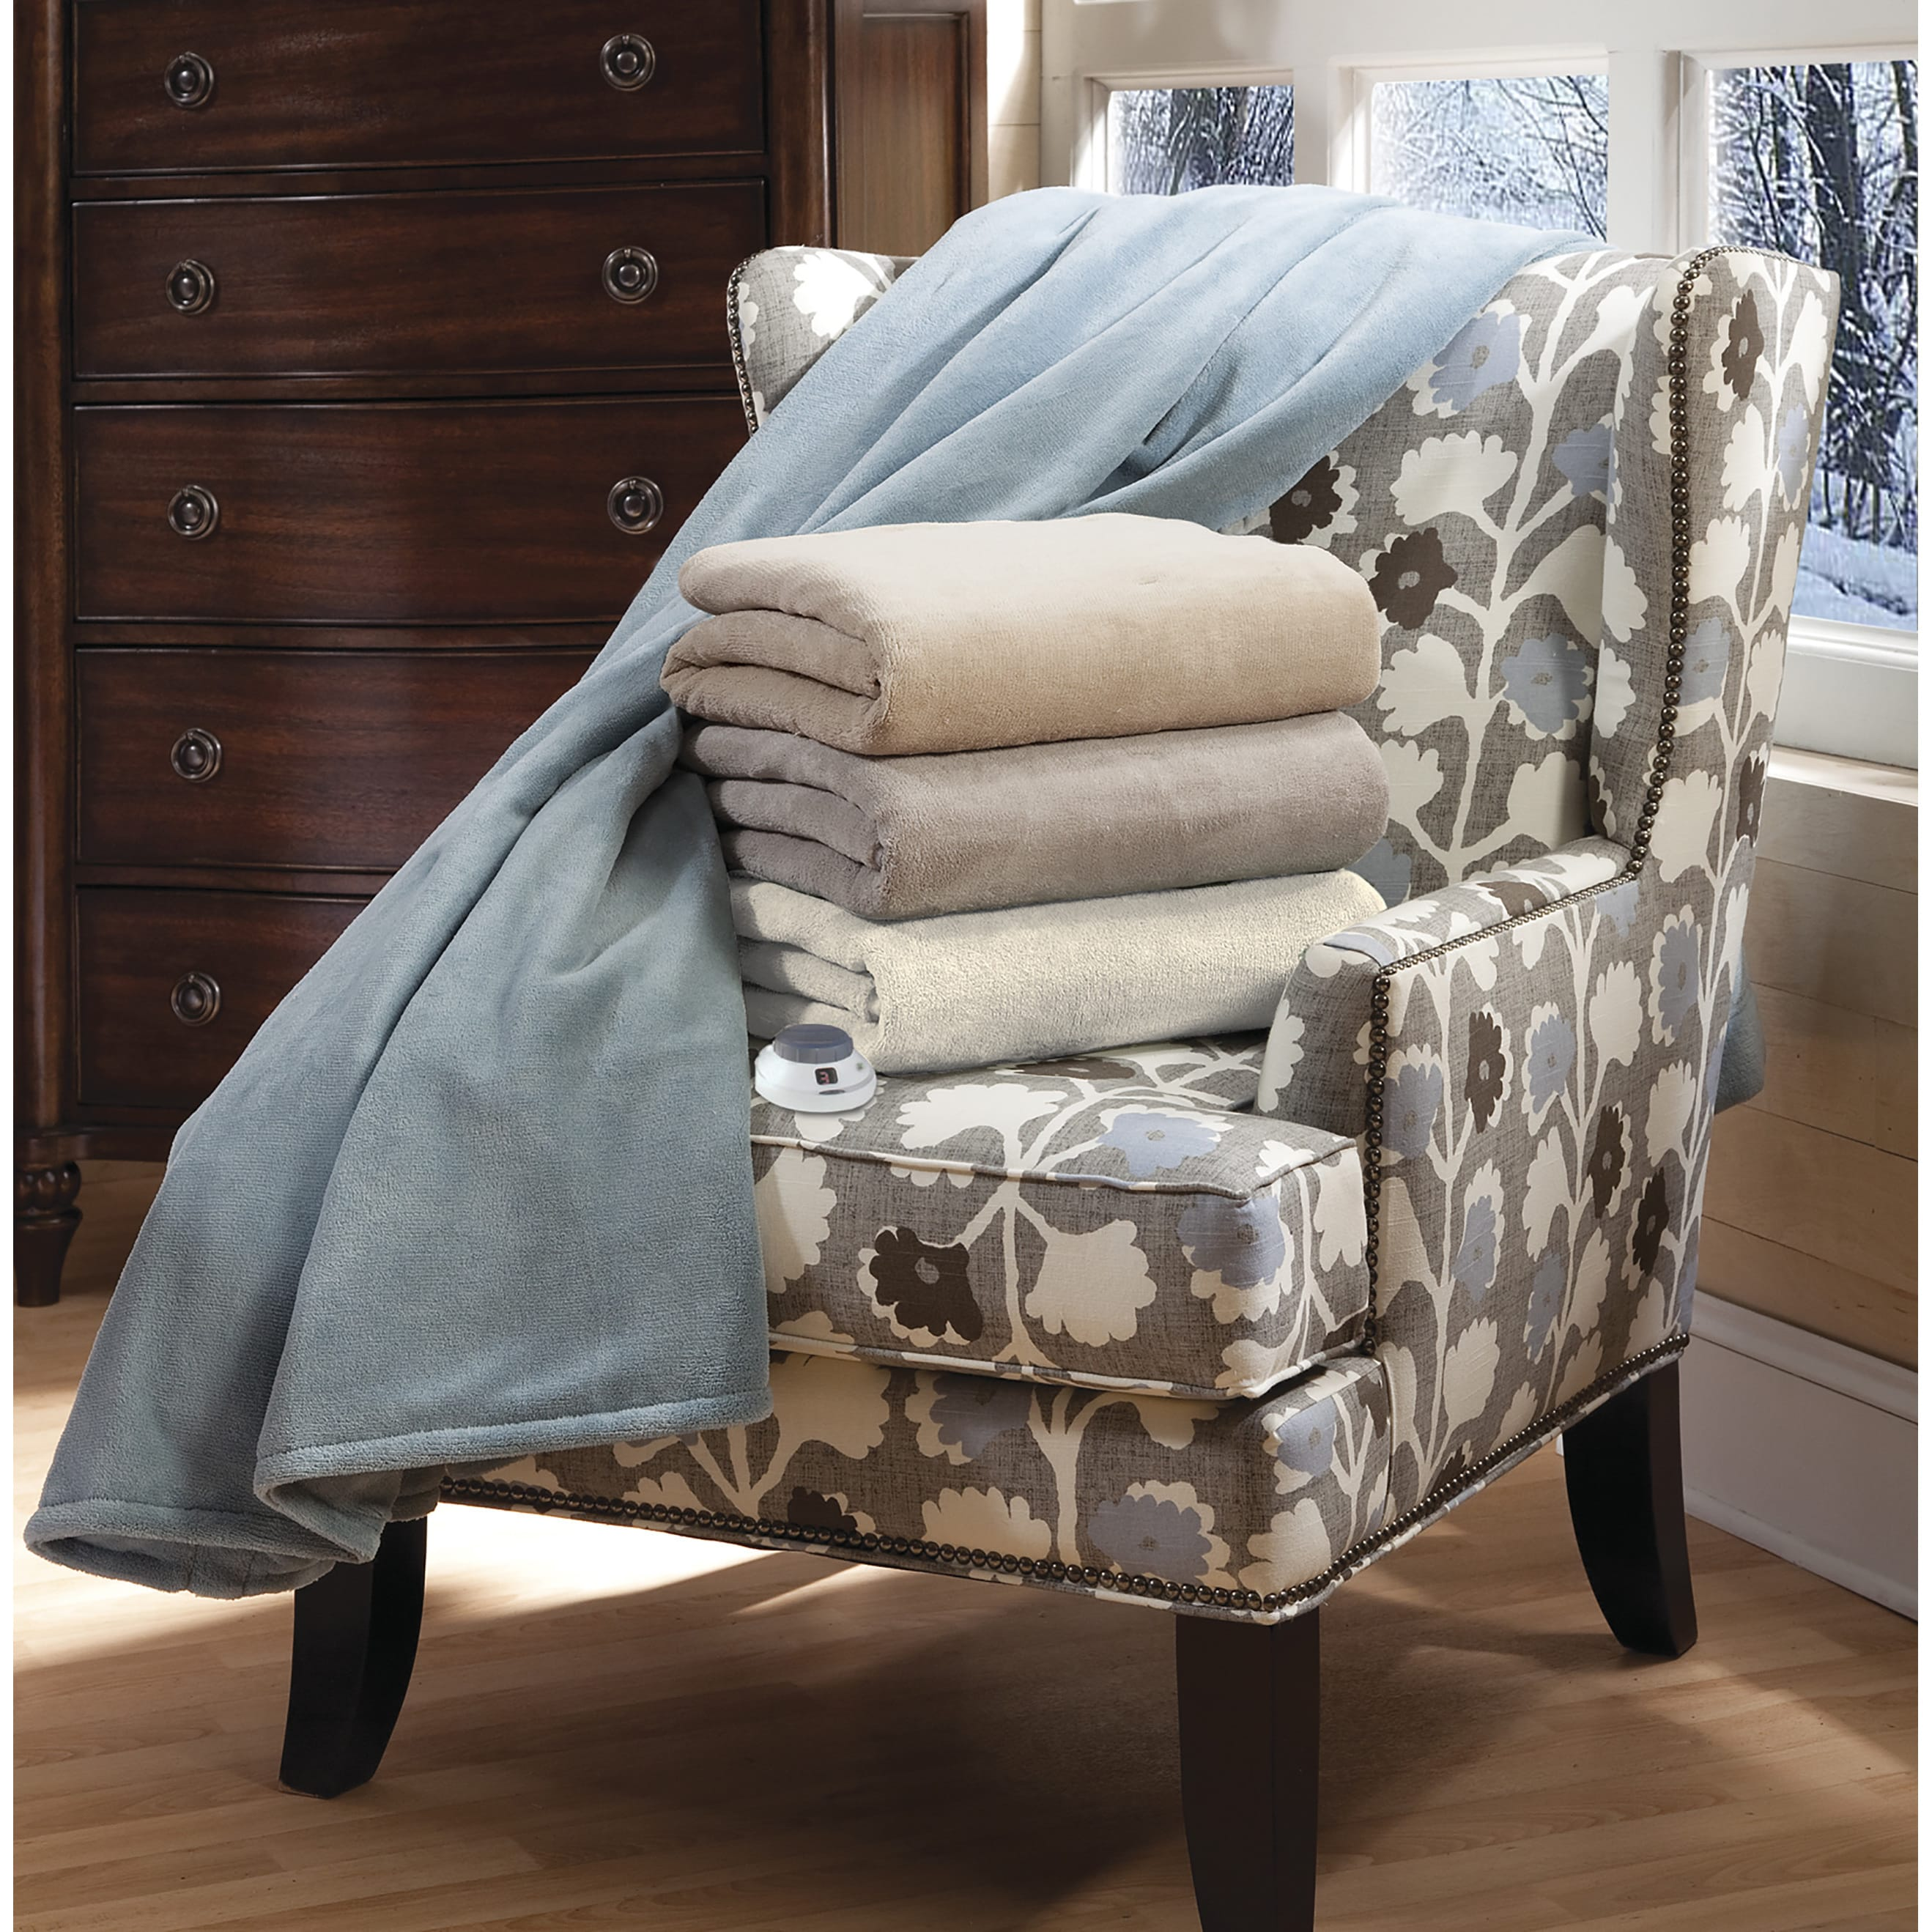 Serta Luxe Plush Electric Heated Throw with Low Voltage T...